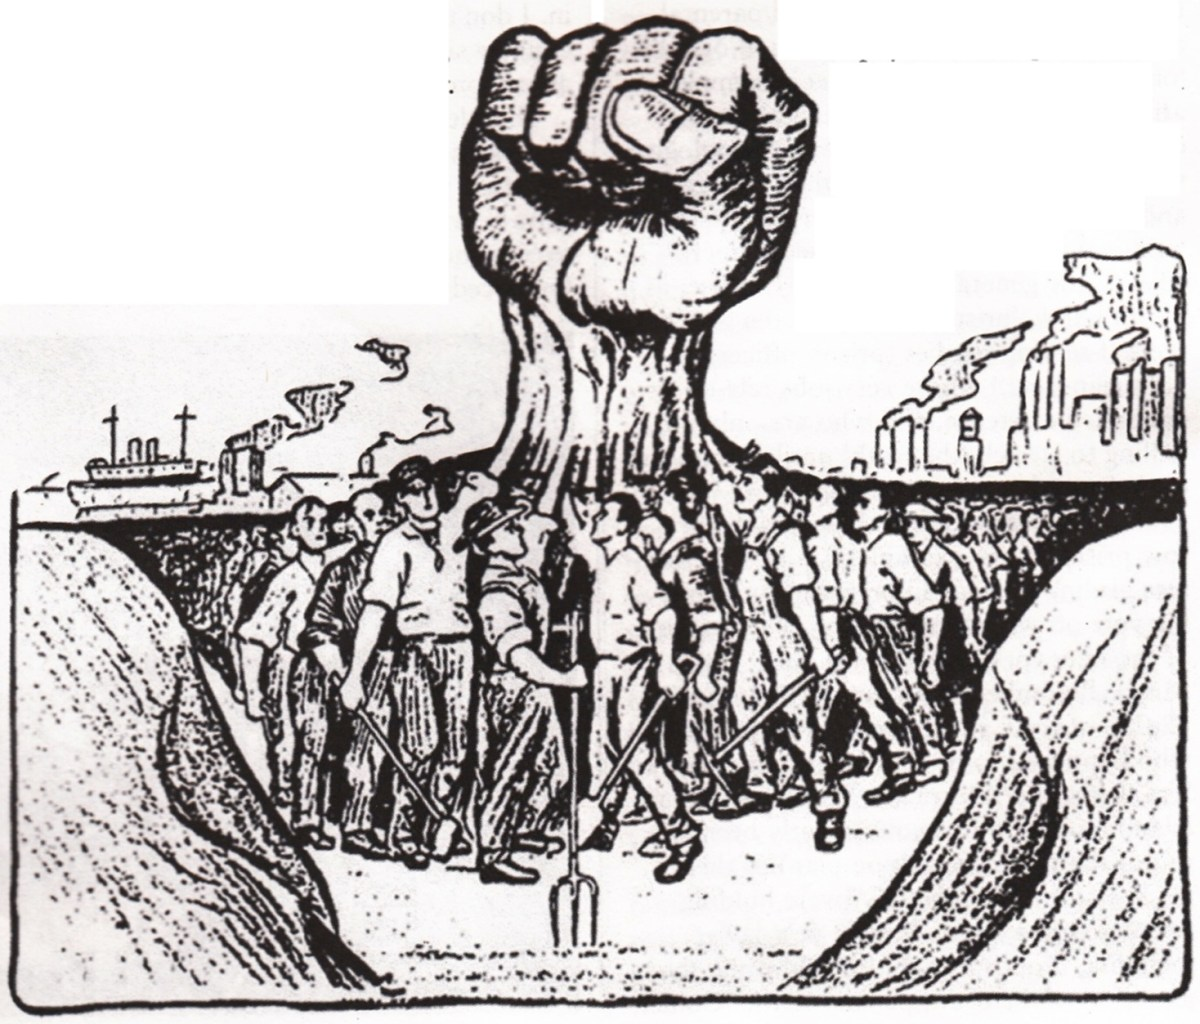 If Blue Collar Workers Want Better Jobs They Need Unions